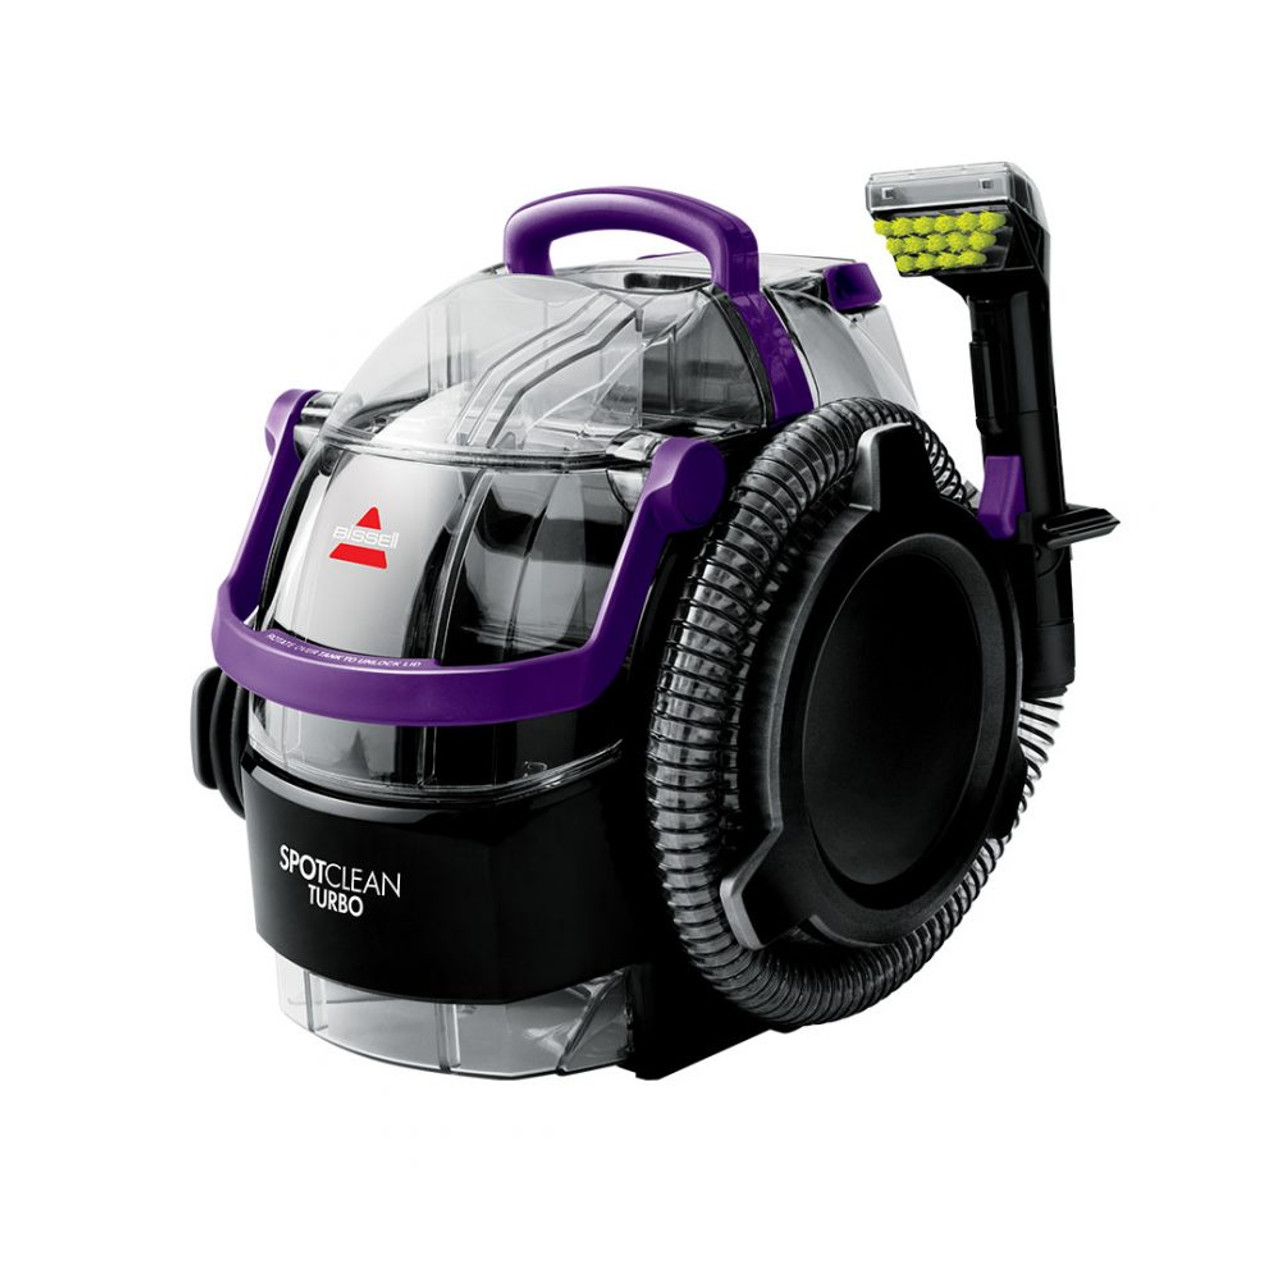 Bissell 15582 SpotClean™ Turbo Carpet and Upholstery Shampooer - RRP $399.00